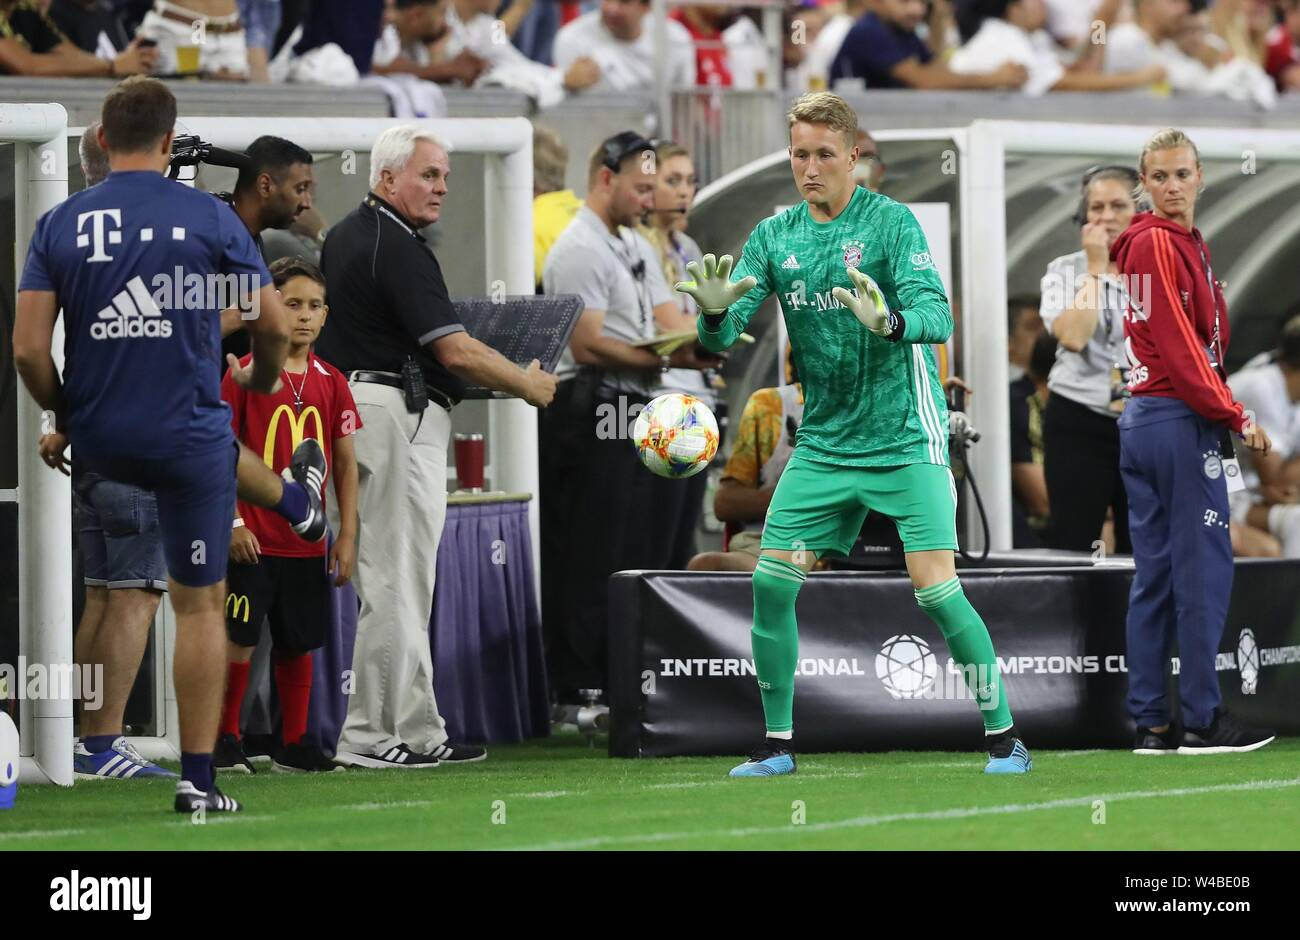 Real Madrid Goalkeeper Coach Stock Photos & Real Madrid Goalkeeper